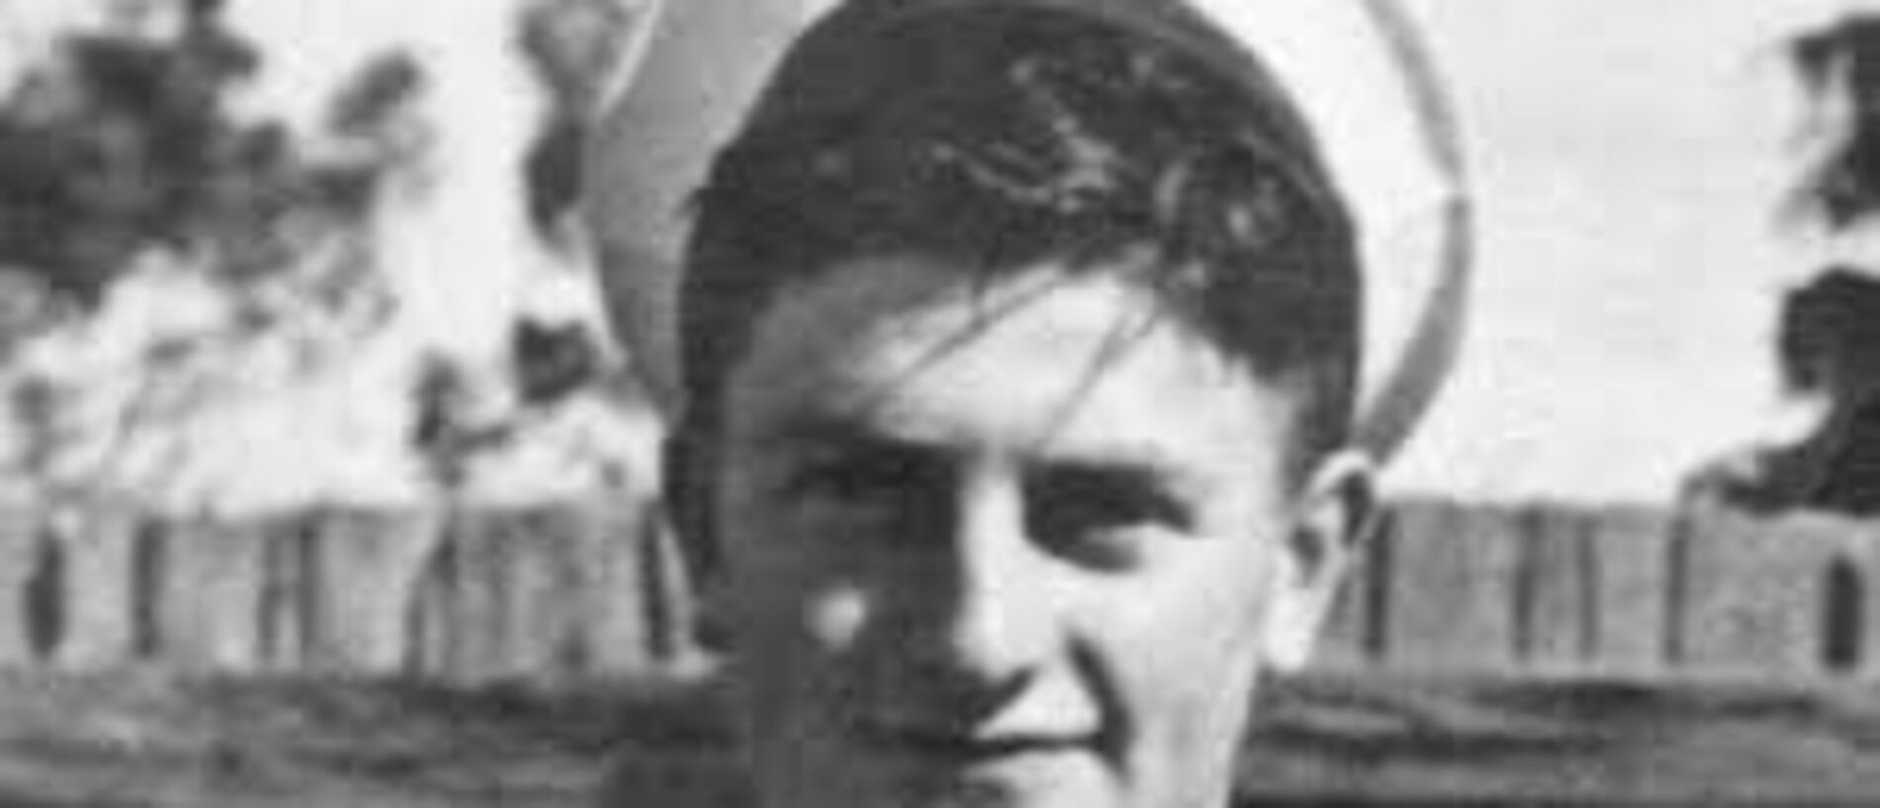 The family of Teddy Sheean had hoped a ceremony to recognise the Victoria Cross honour for the World War II hero could be held as early as December.